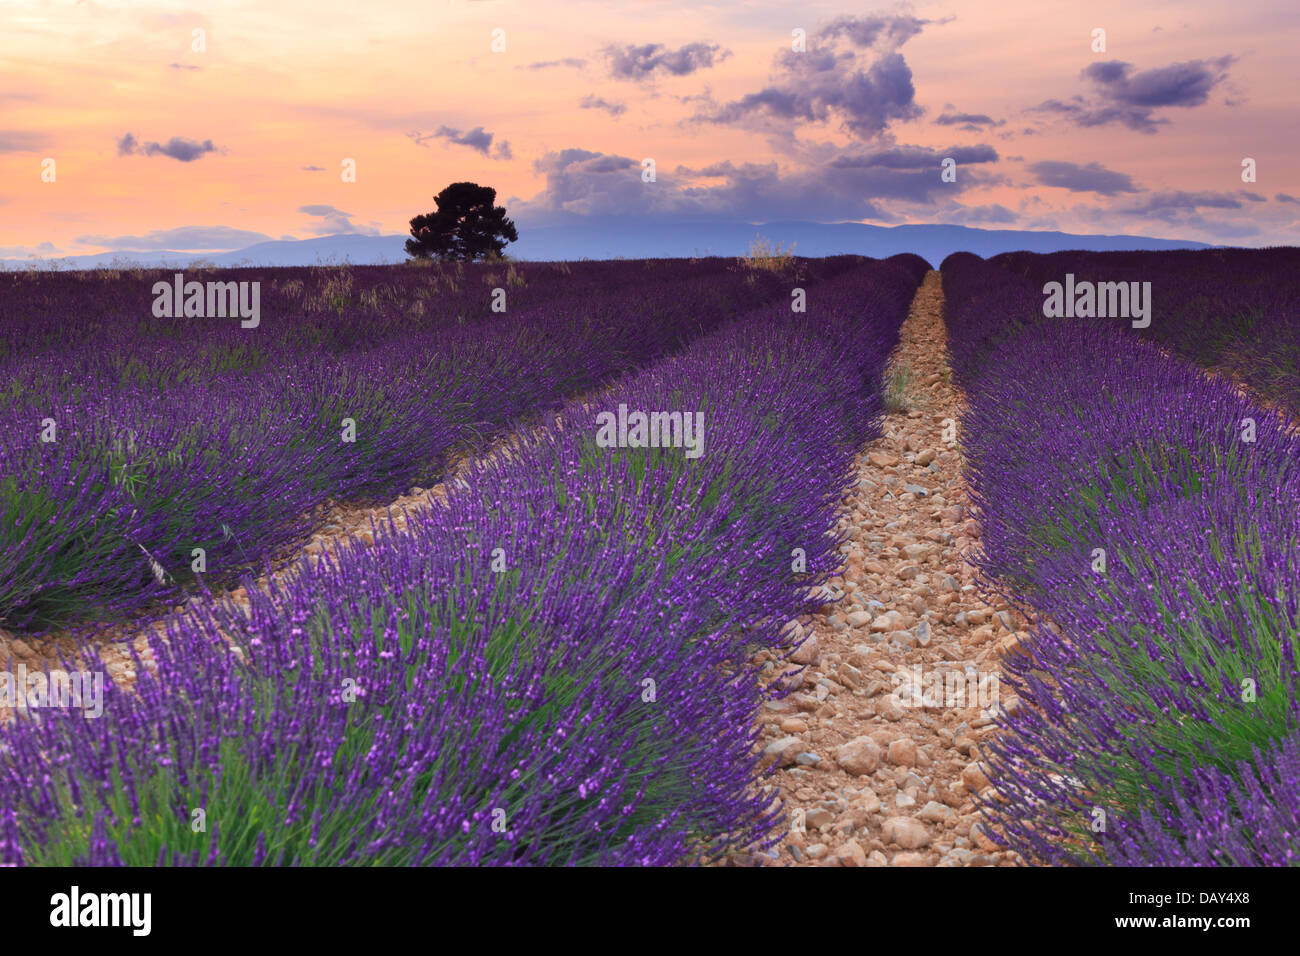 Lavender field at sunset, Provence. - Stock Image